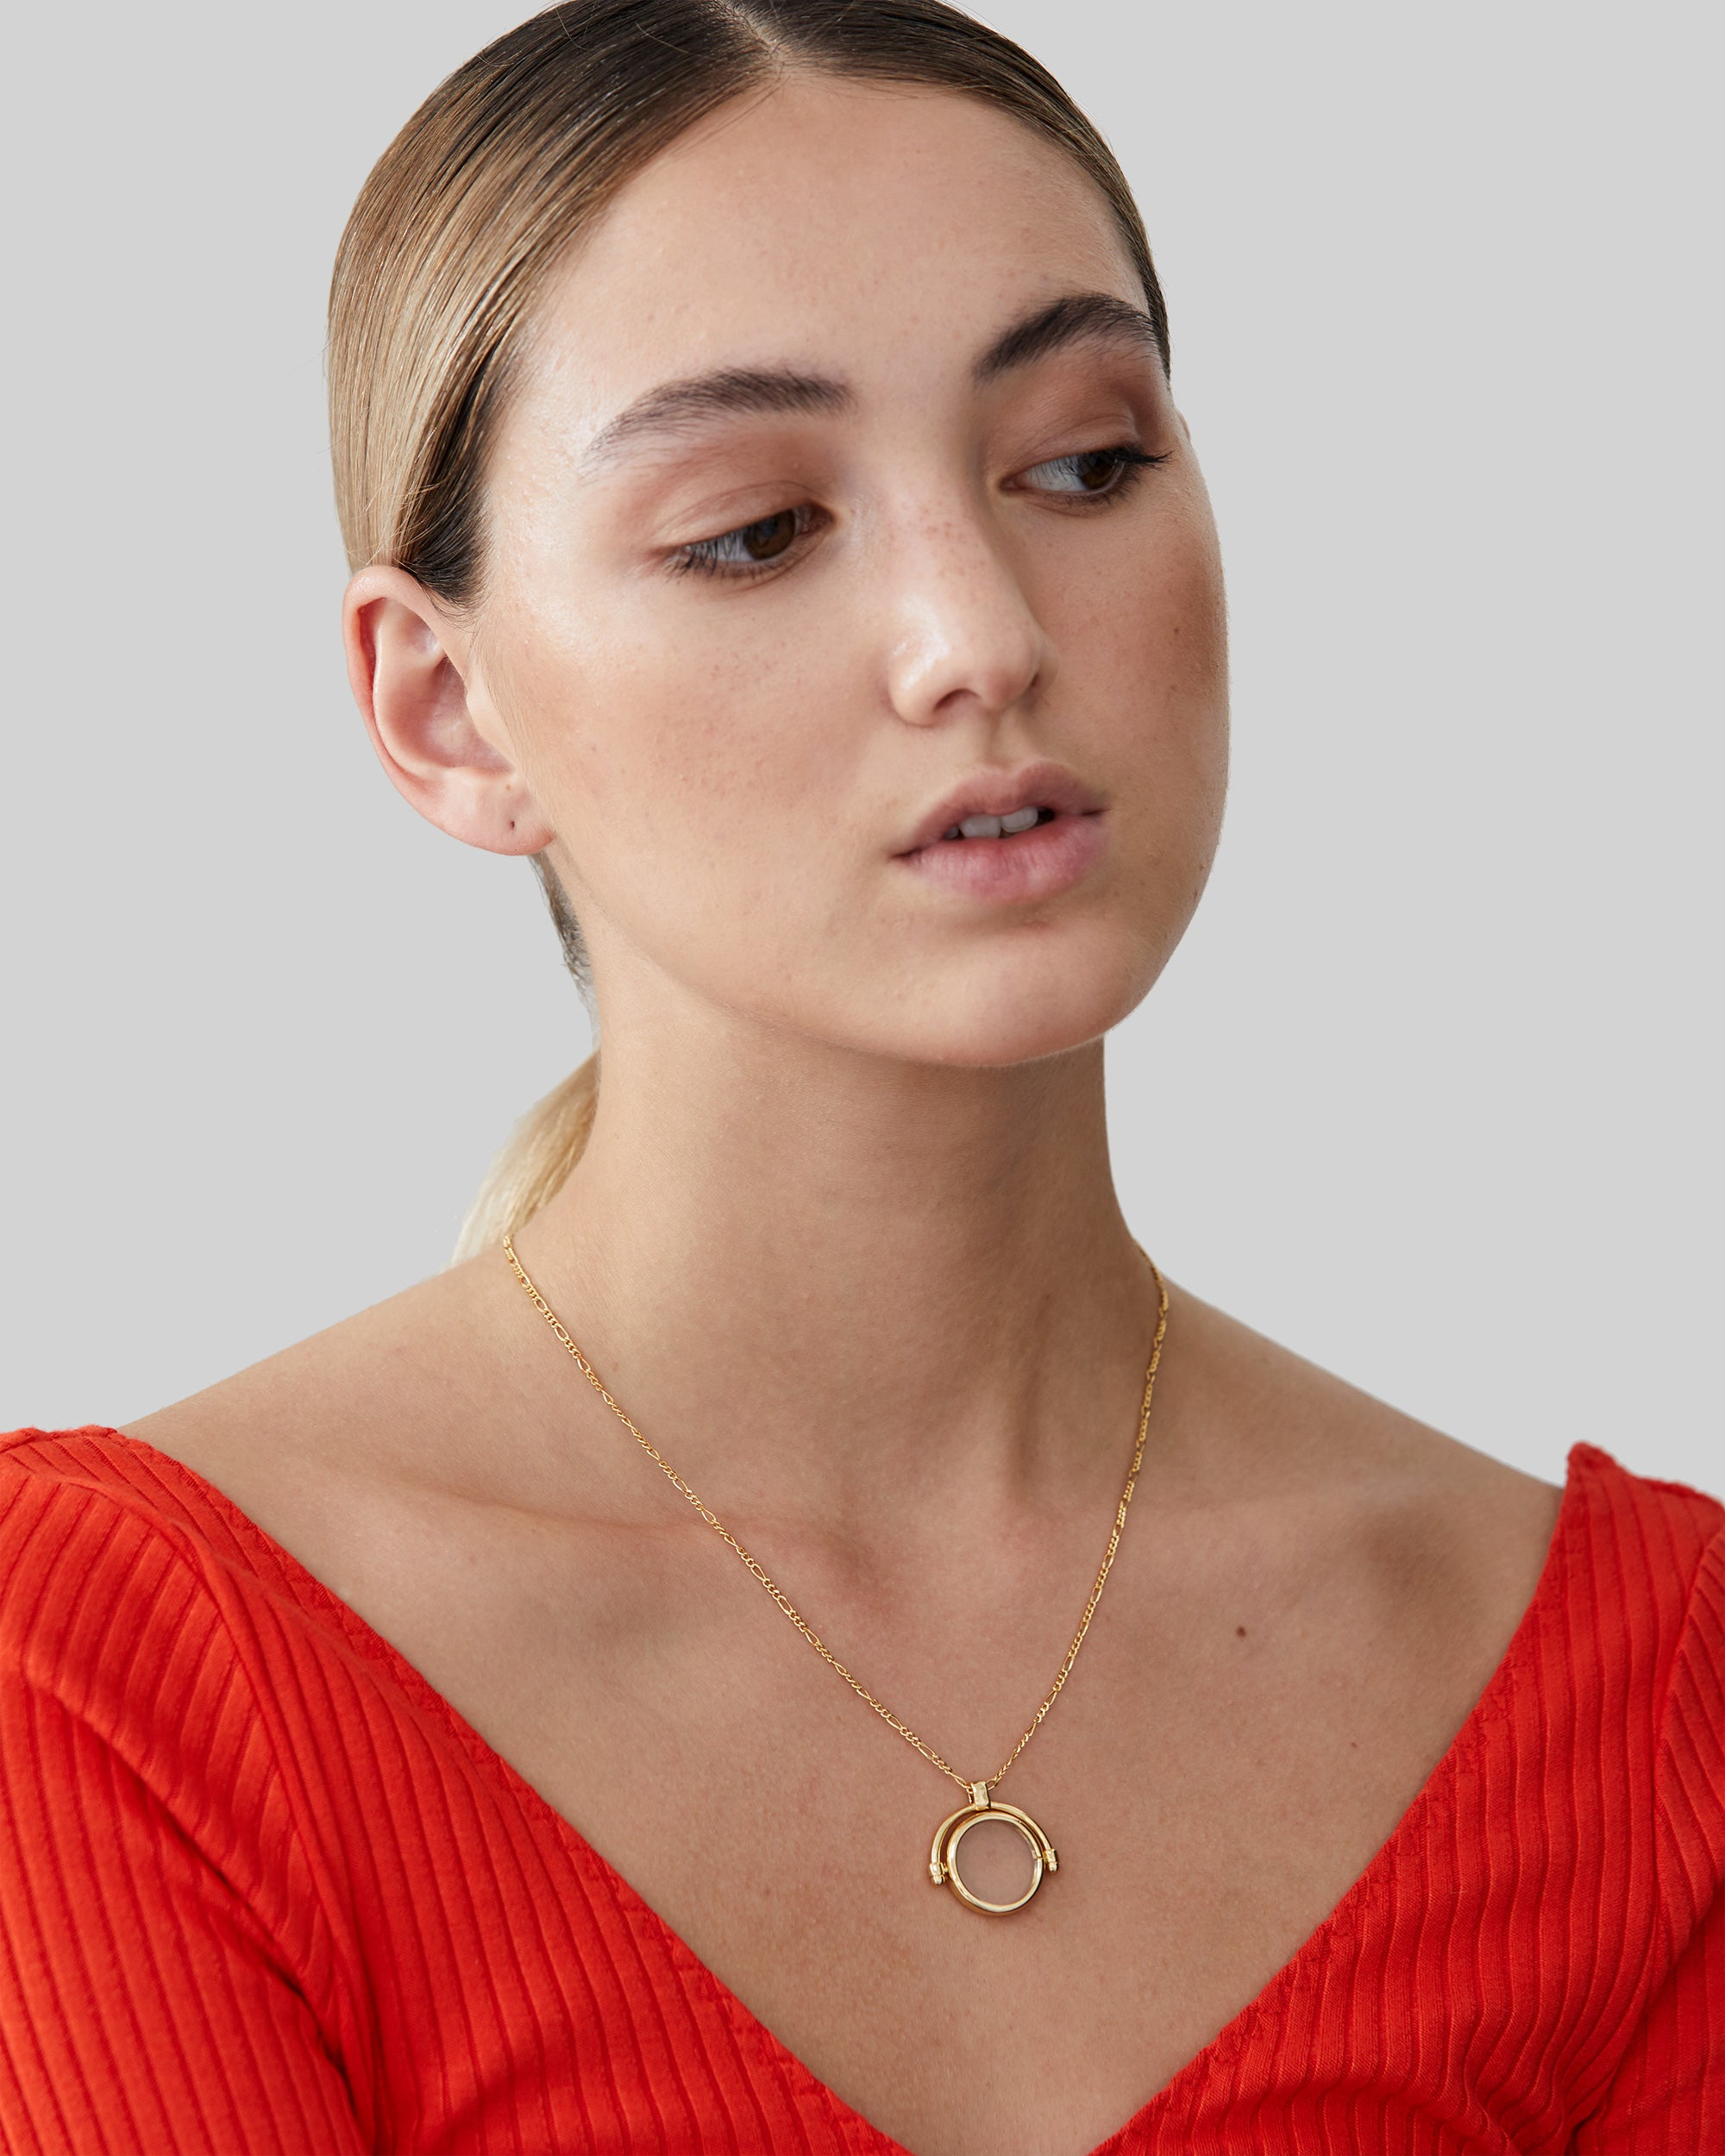 North North North 12 carat thin gold figaro necklace with a transparent disc set in a gold frame, Colonel